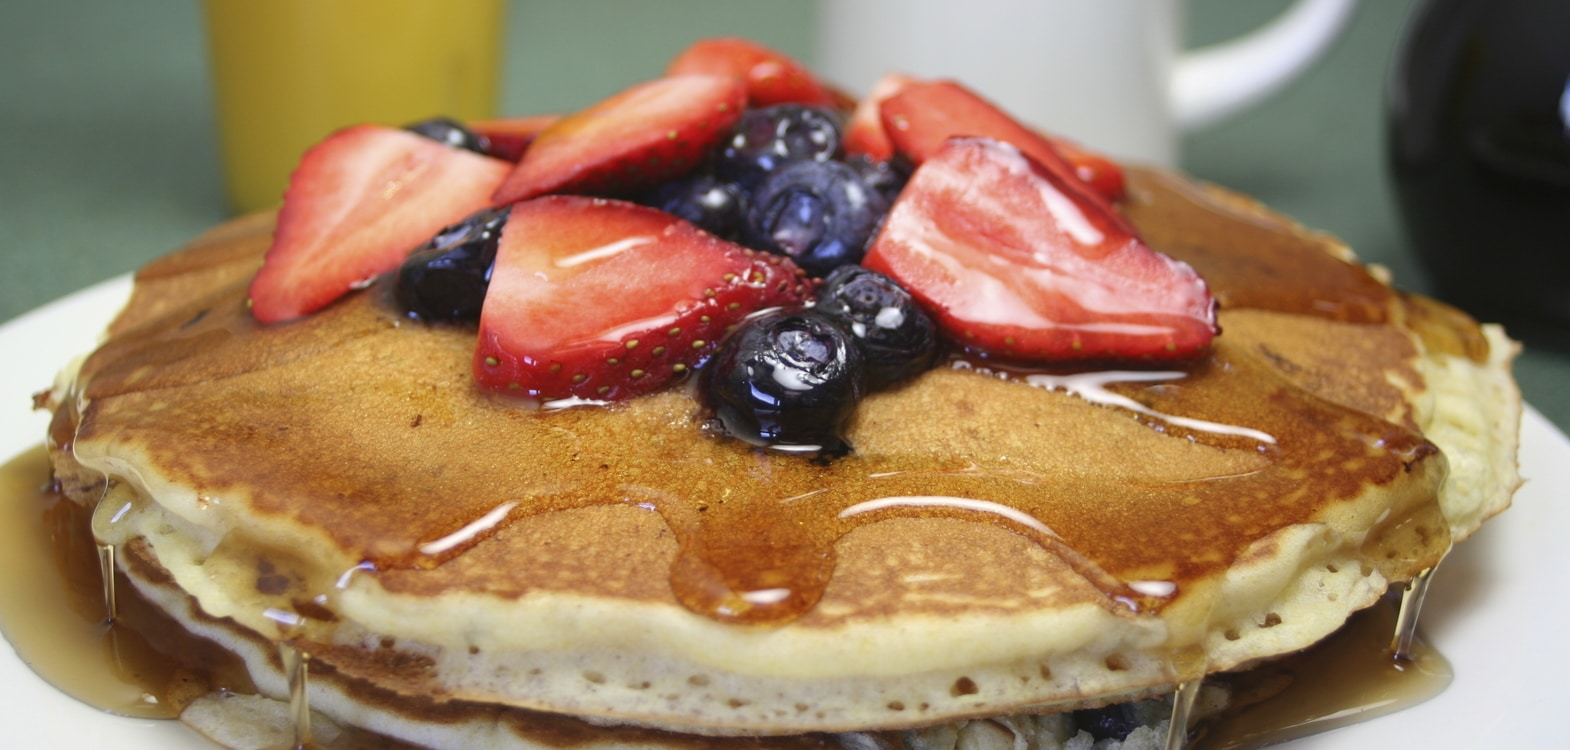 Homemade pancakes with fresh fruit on top and covered in runny honey and maple syrup